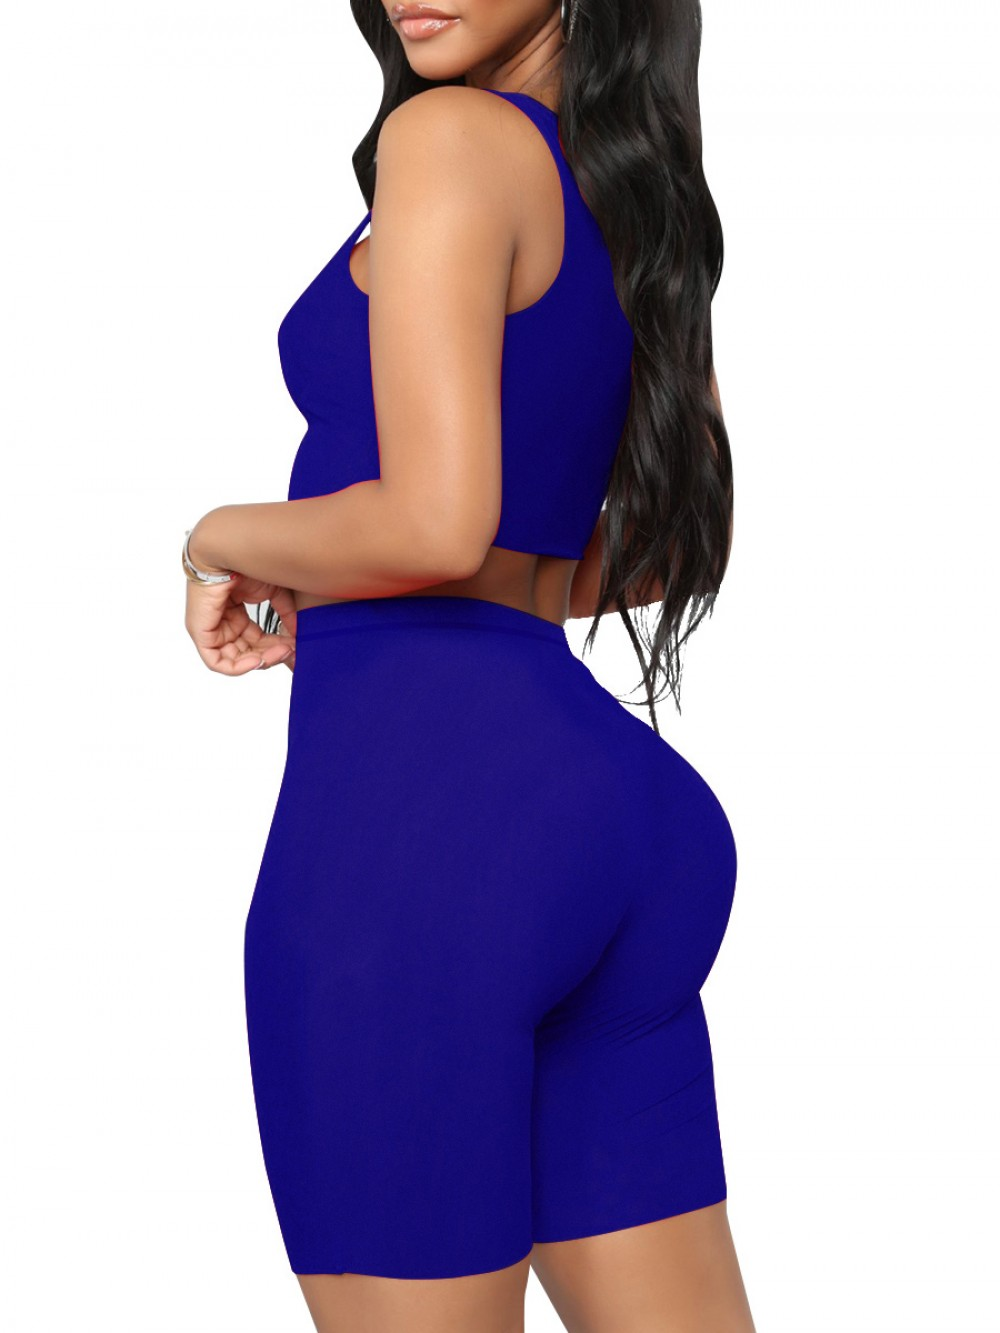 Upgrade Royal Blue Solid Color Tight Sweat Suit High Rise Nice Quality